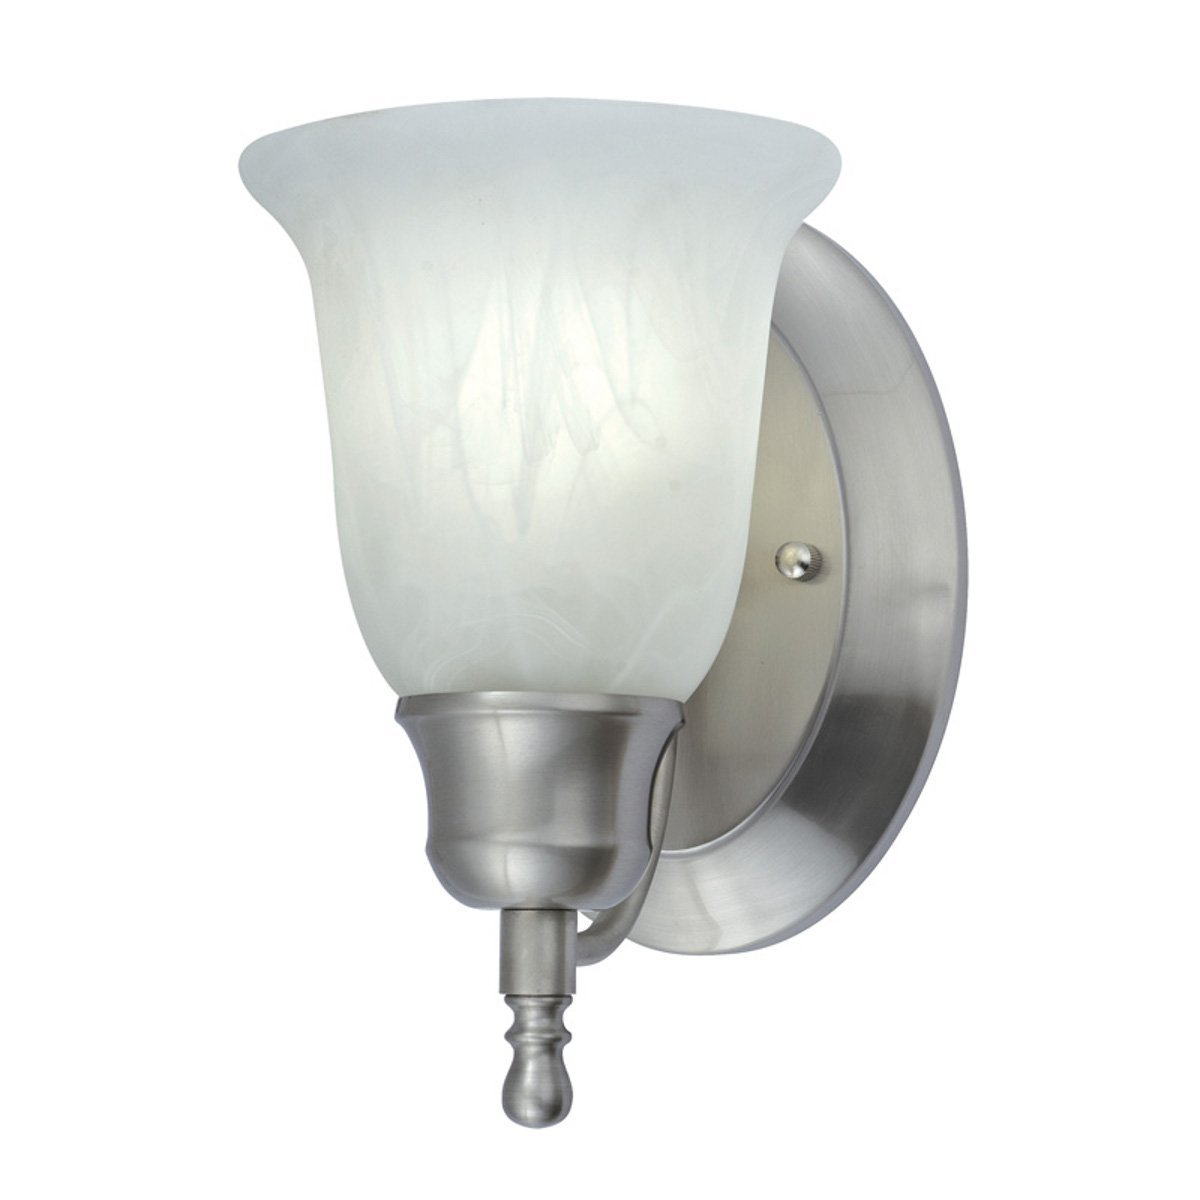 NICOR Lighting 6-Inch 18-Watt Vanity Wall Sconce with Alabaster Glass Shade, Nickel (34475-118NK)